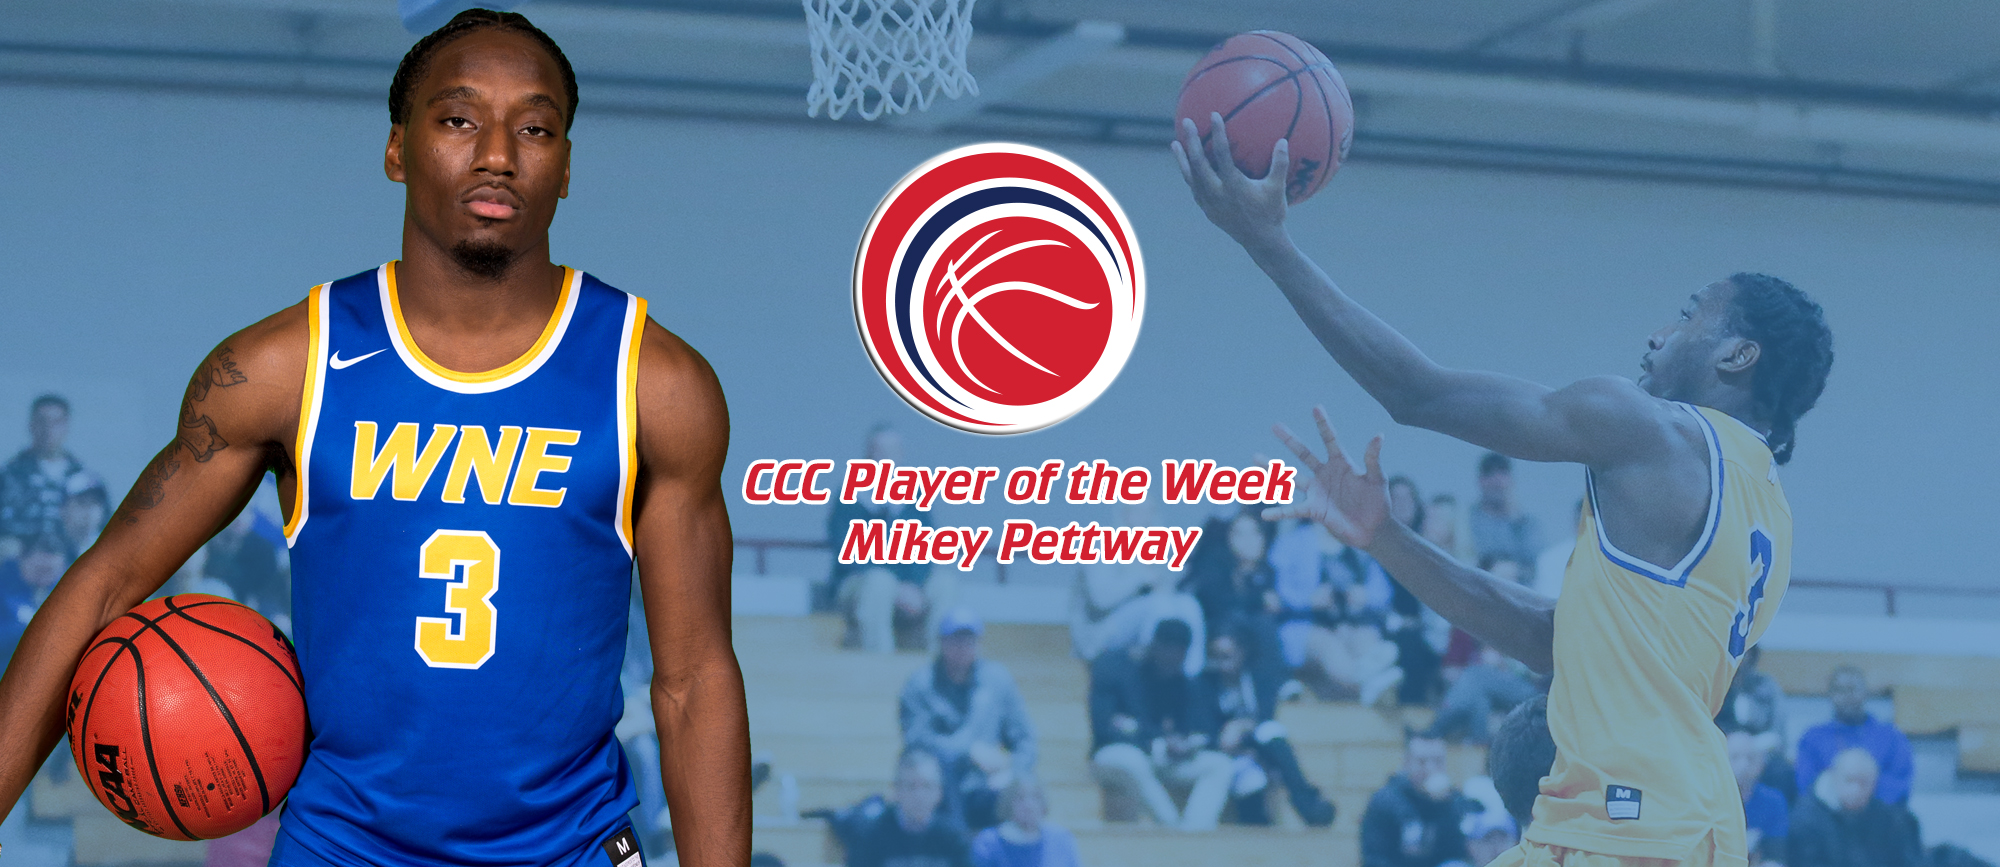 Mikey Pettway Earns First Career CCC Player of the Week Award